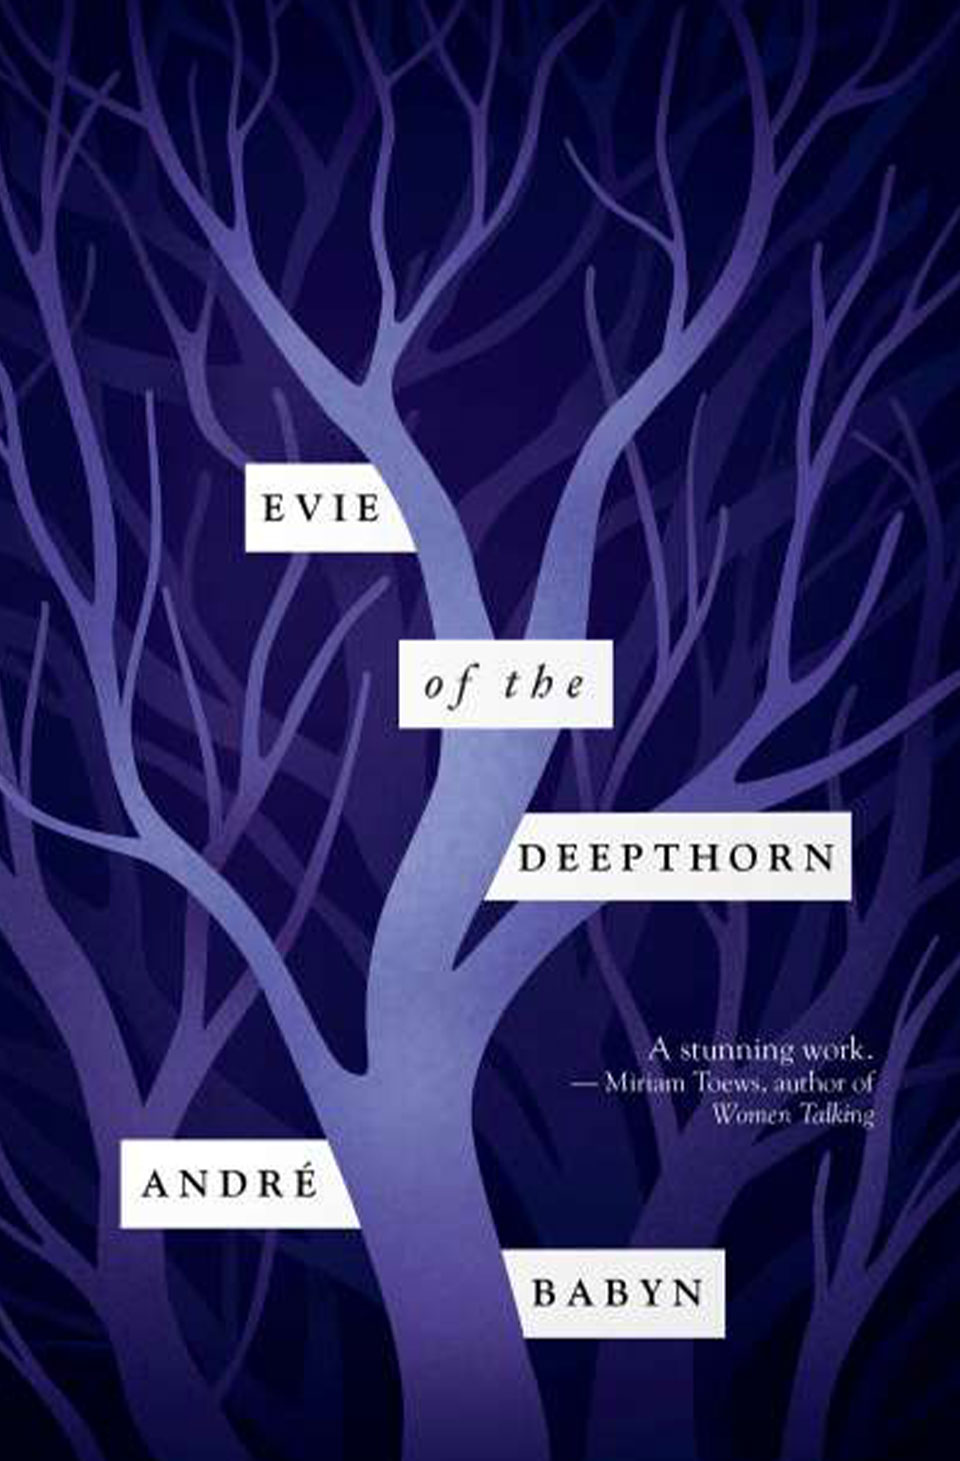 Evie of the Deepthorn by André Babyn